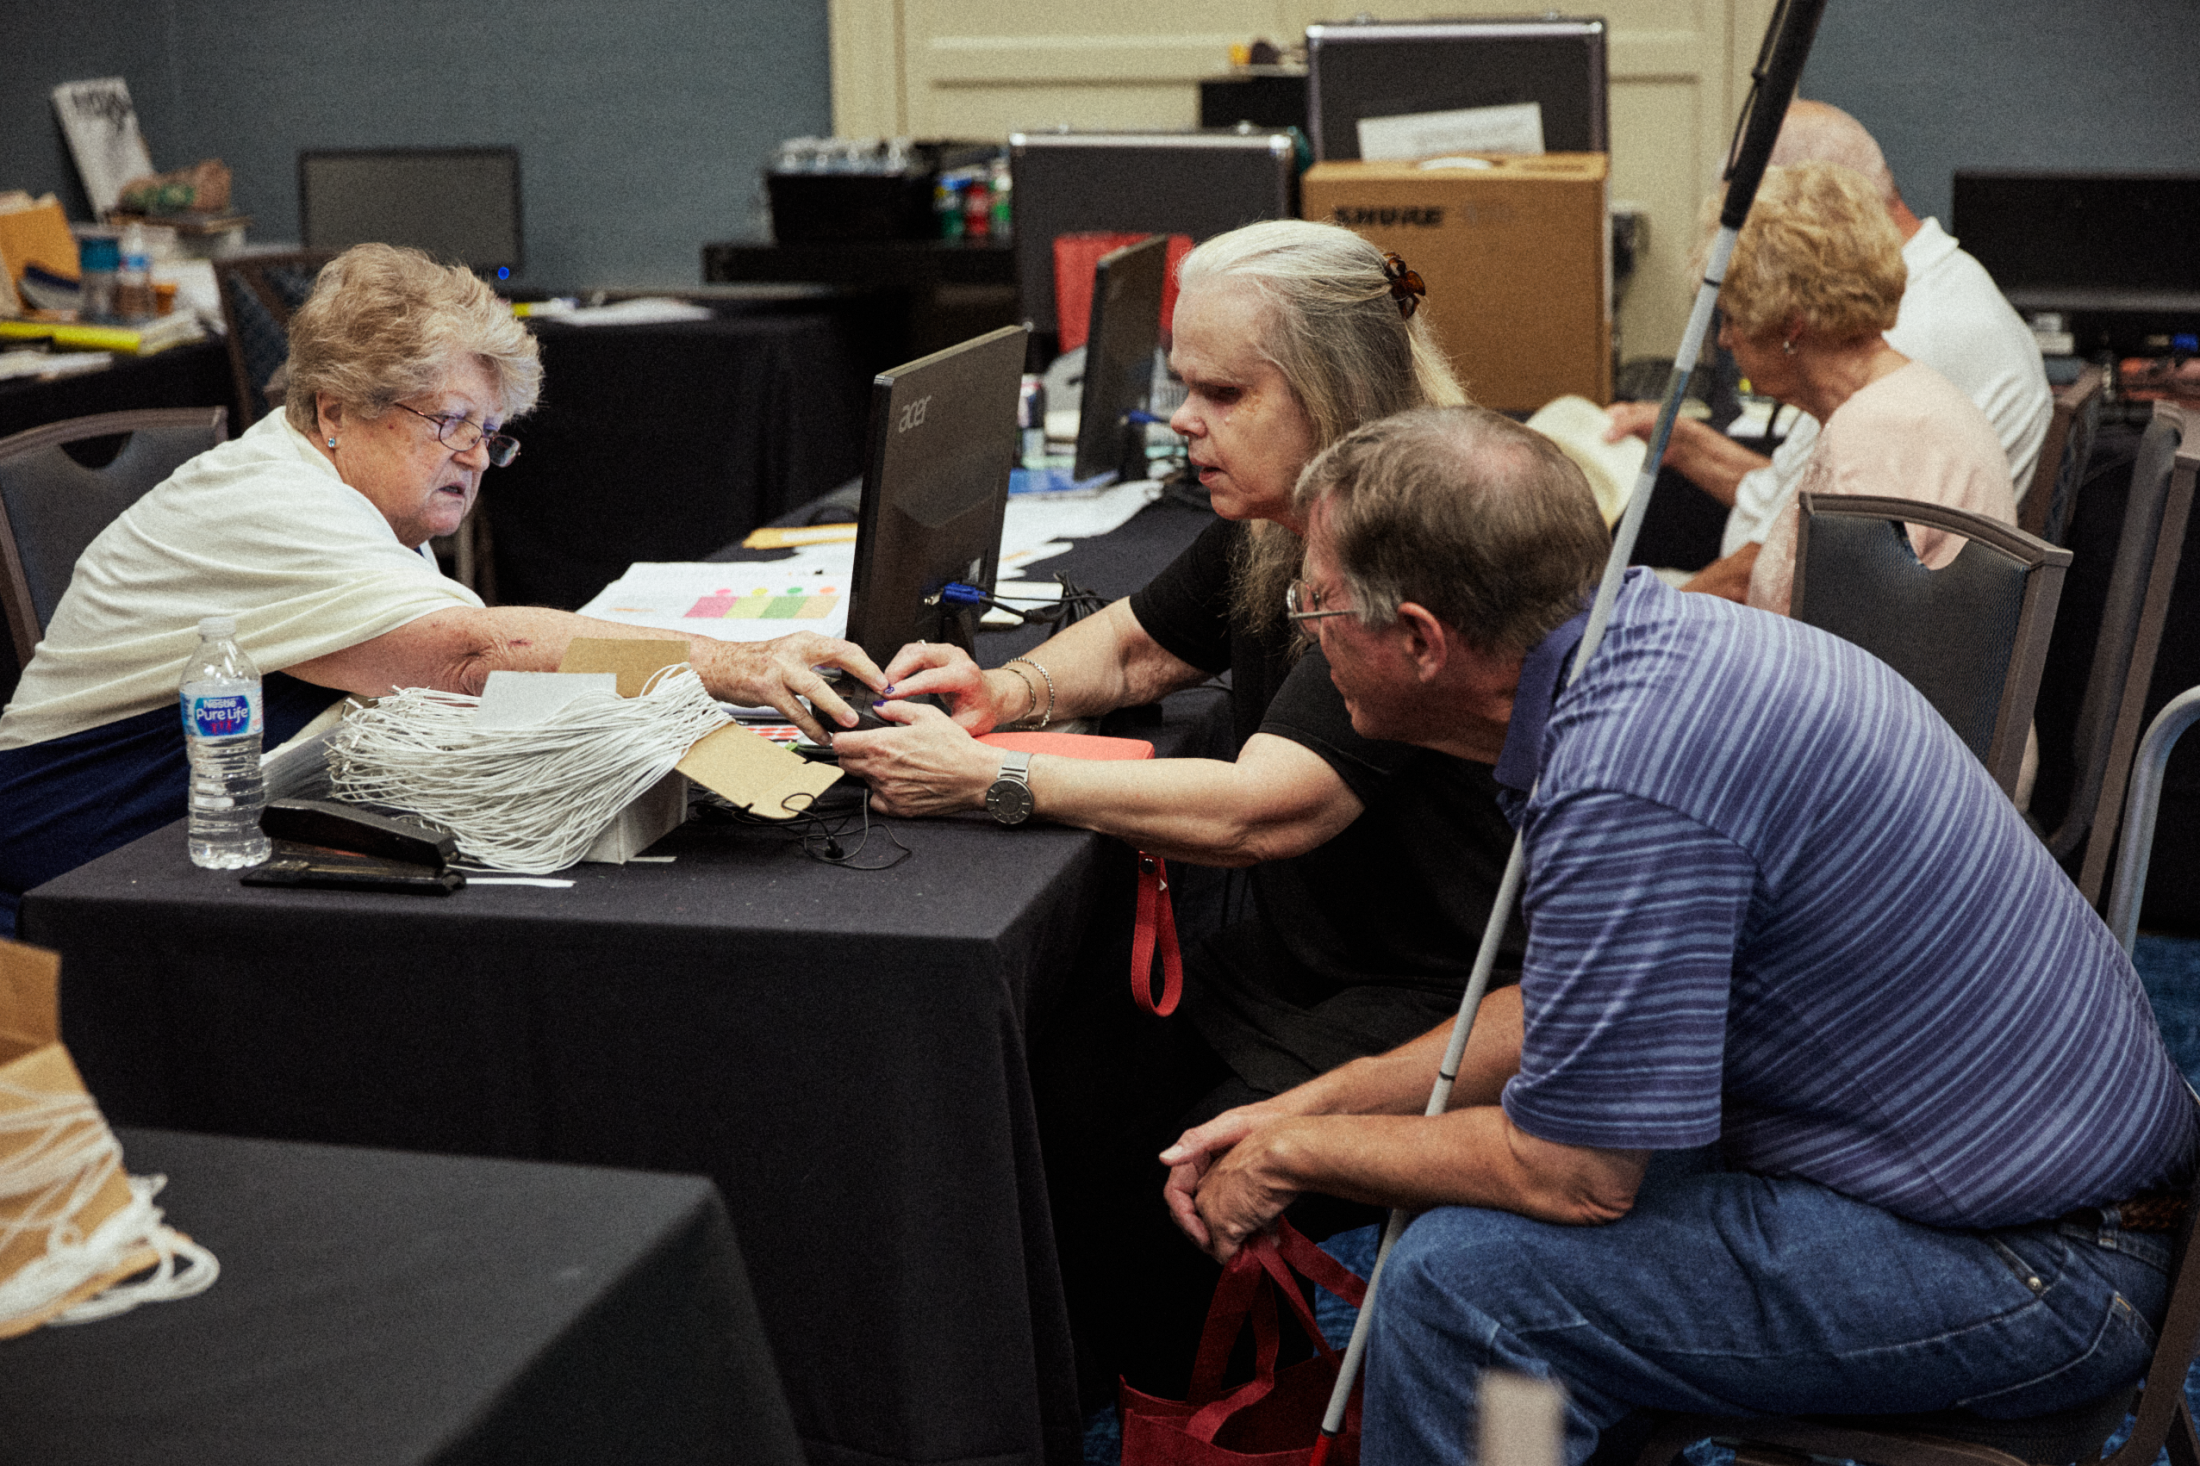 Art and Documentary Photography - Loading 062918_ACBConvention-StLouis_ConventionRegistration_004.png